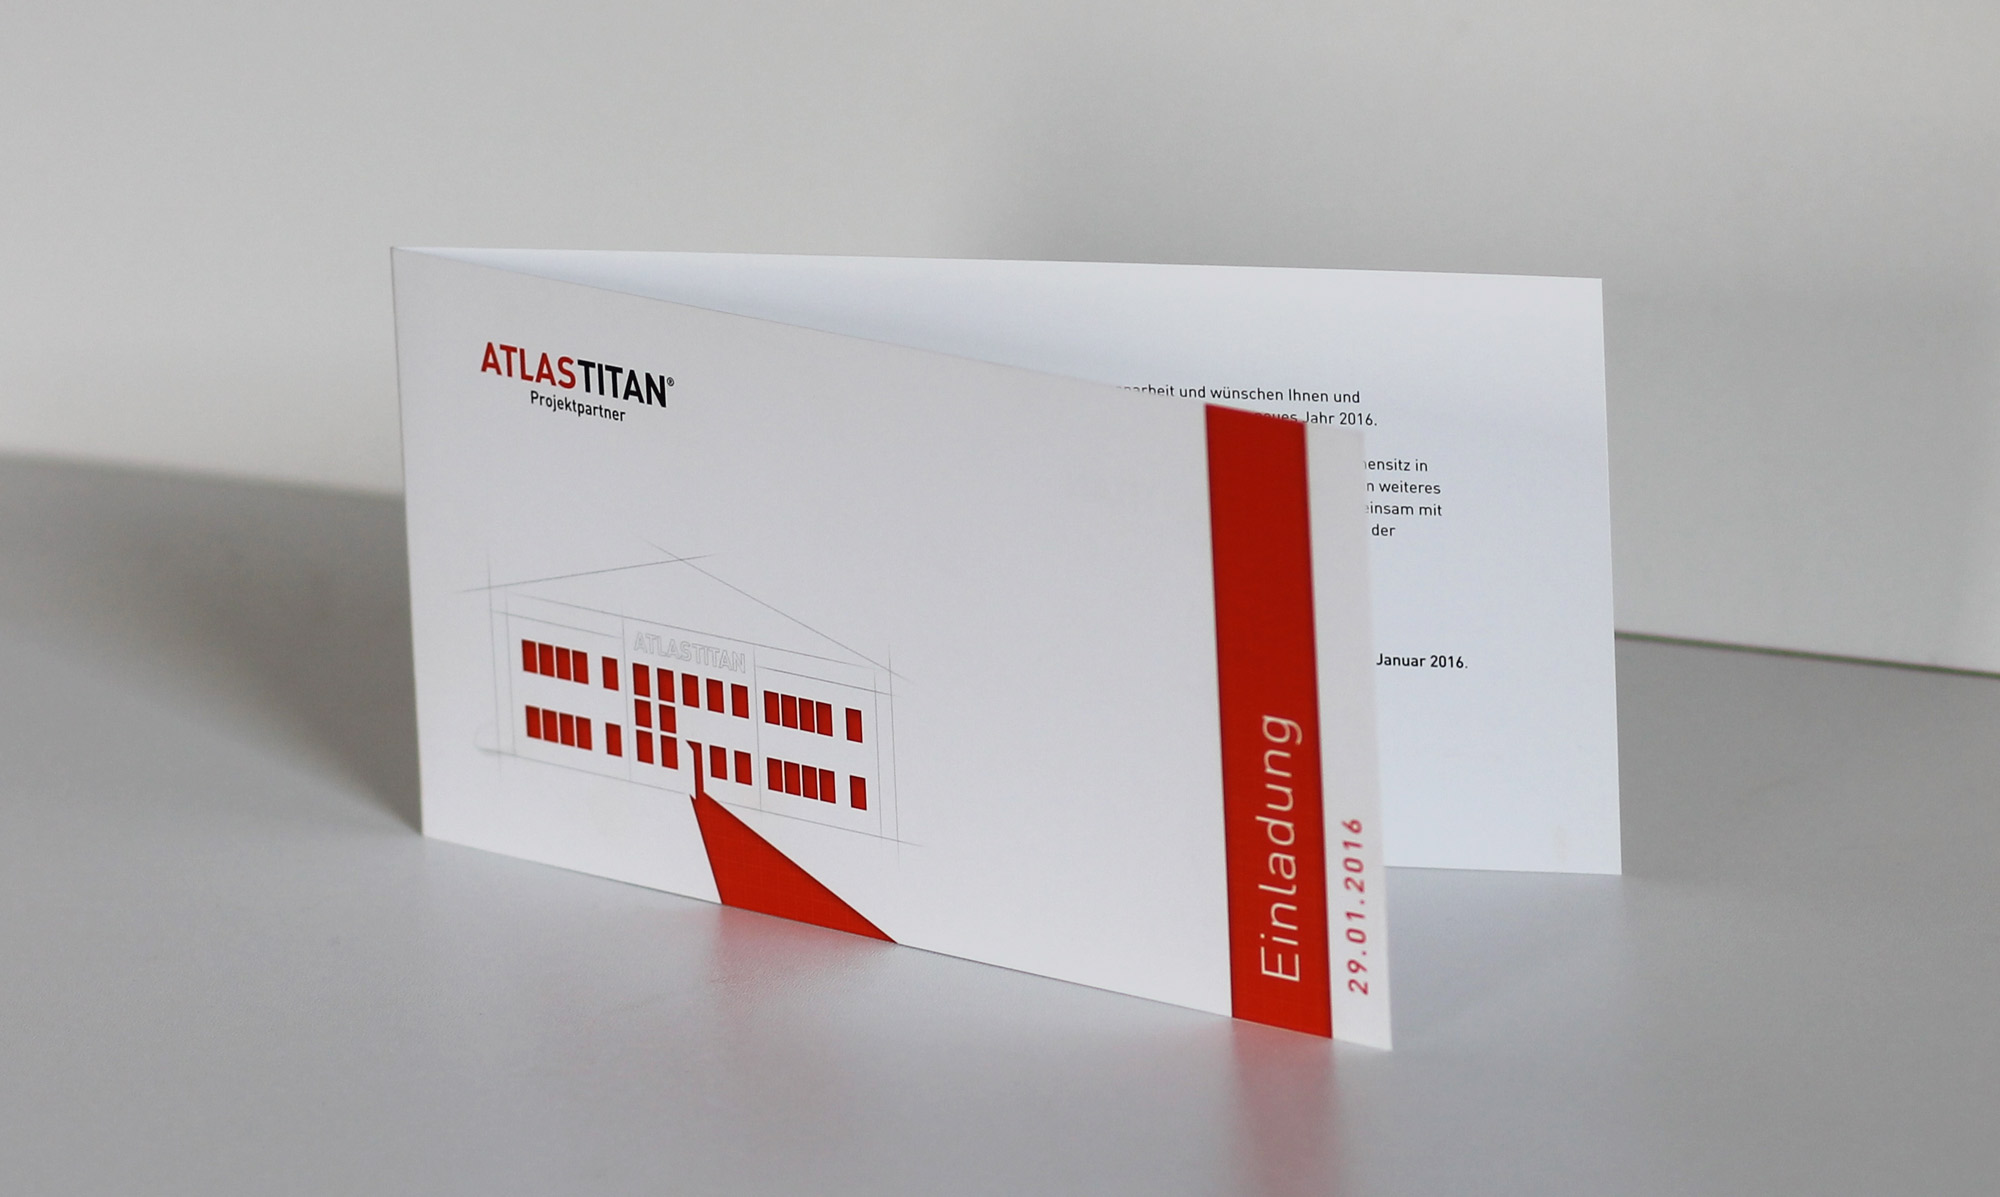 atlastitan1